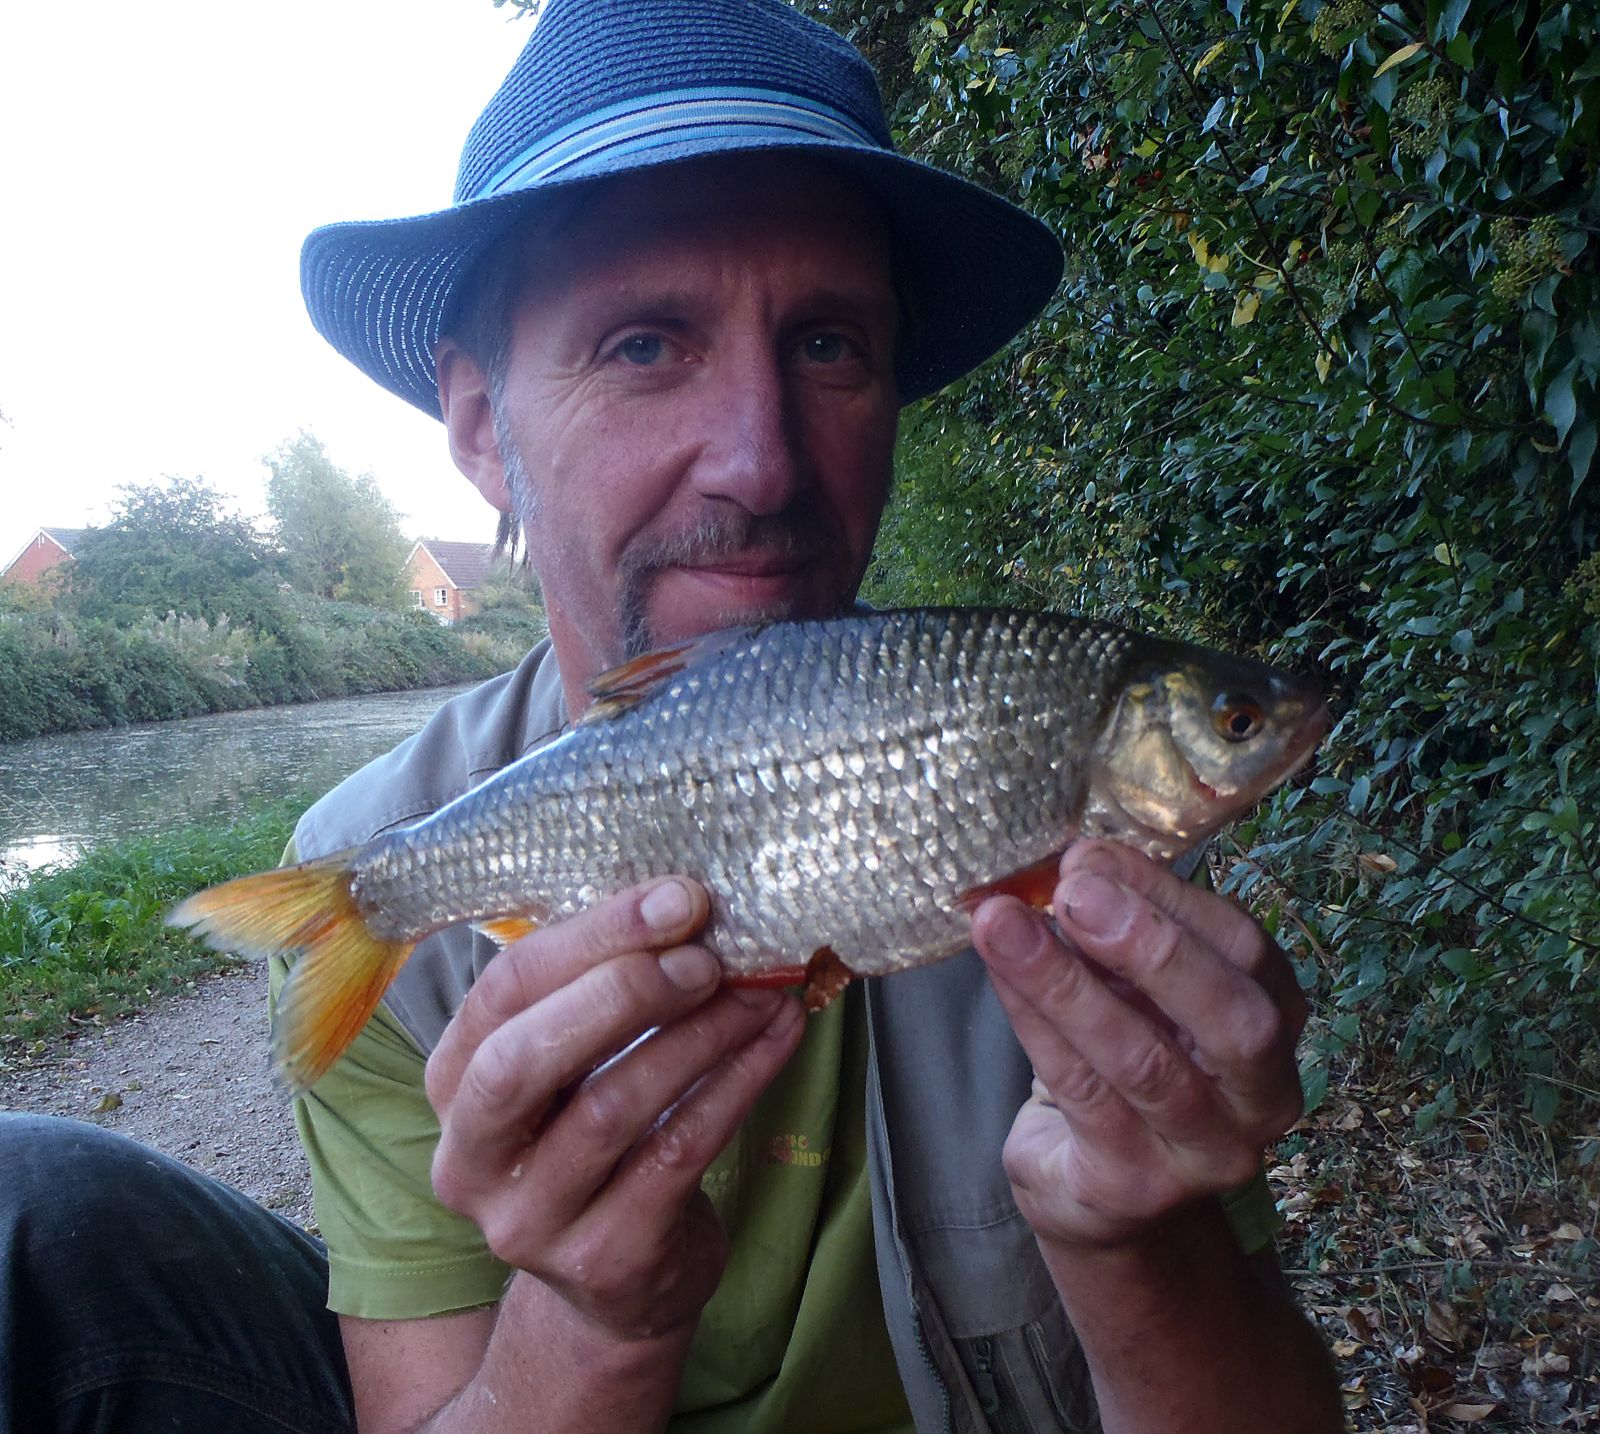 Idler 39 s quest a seeswood seizure rare flying anglers for Can fish have seizures